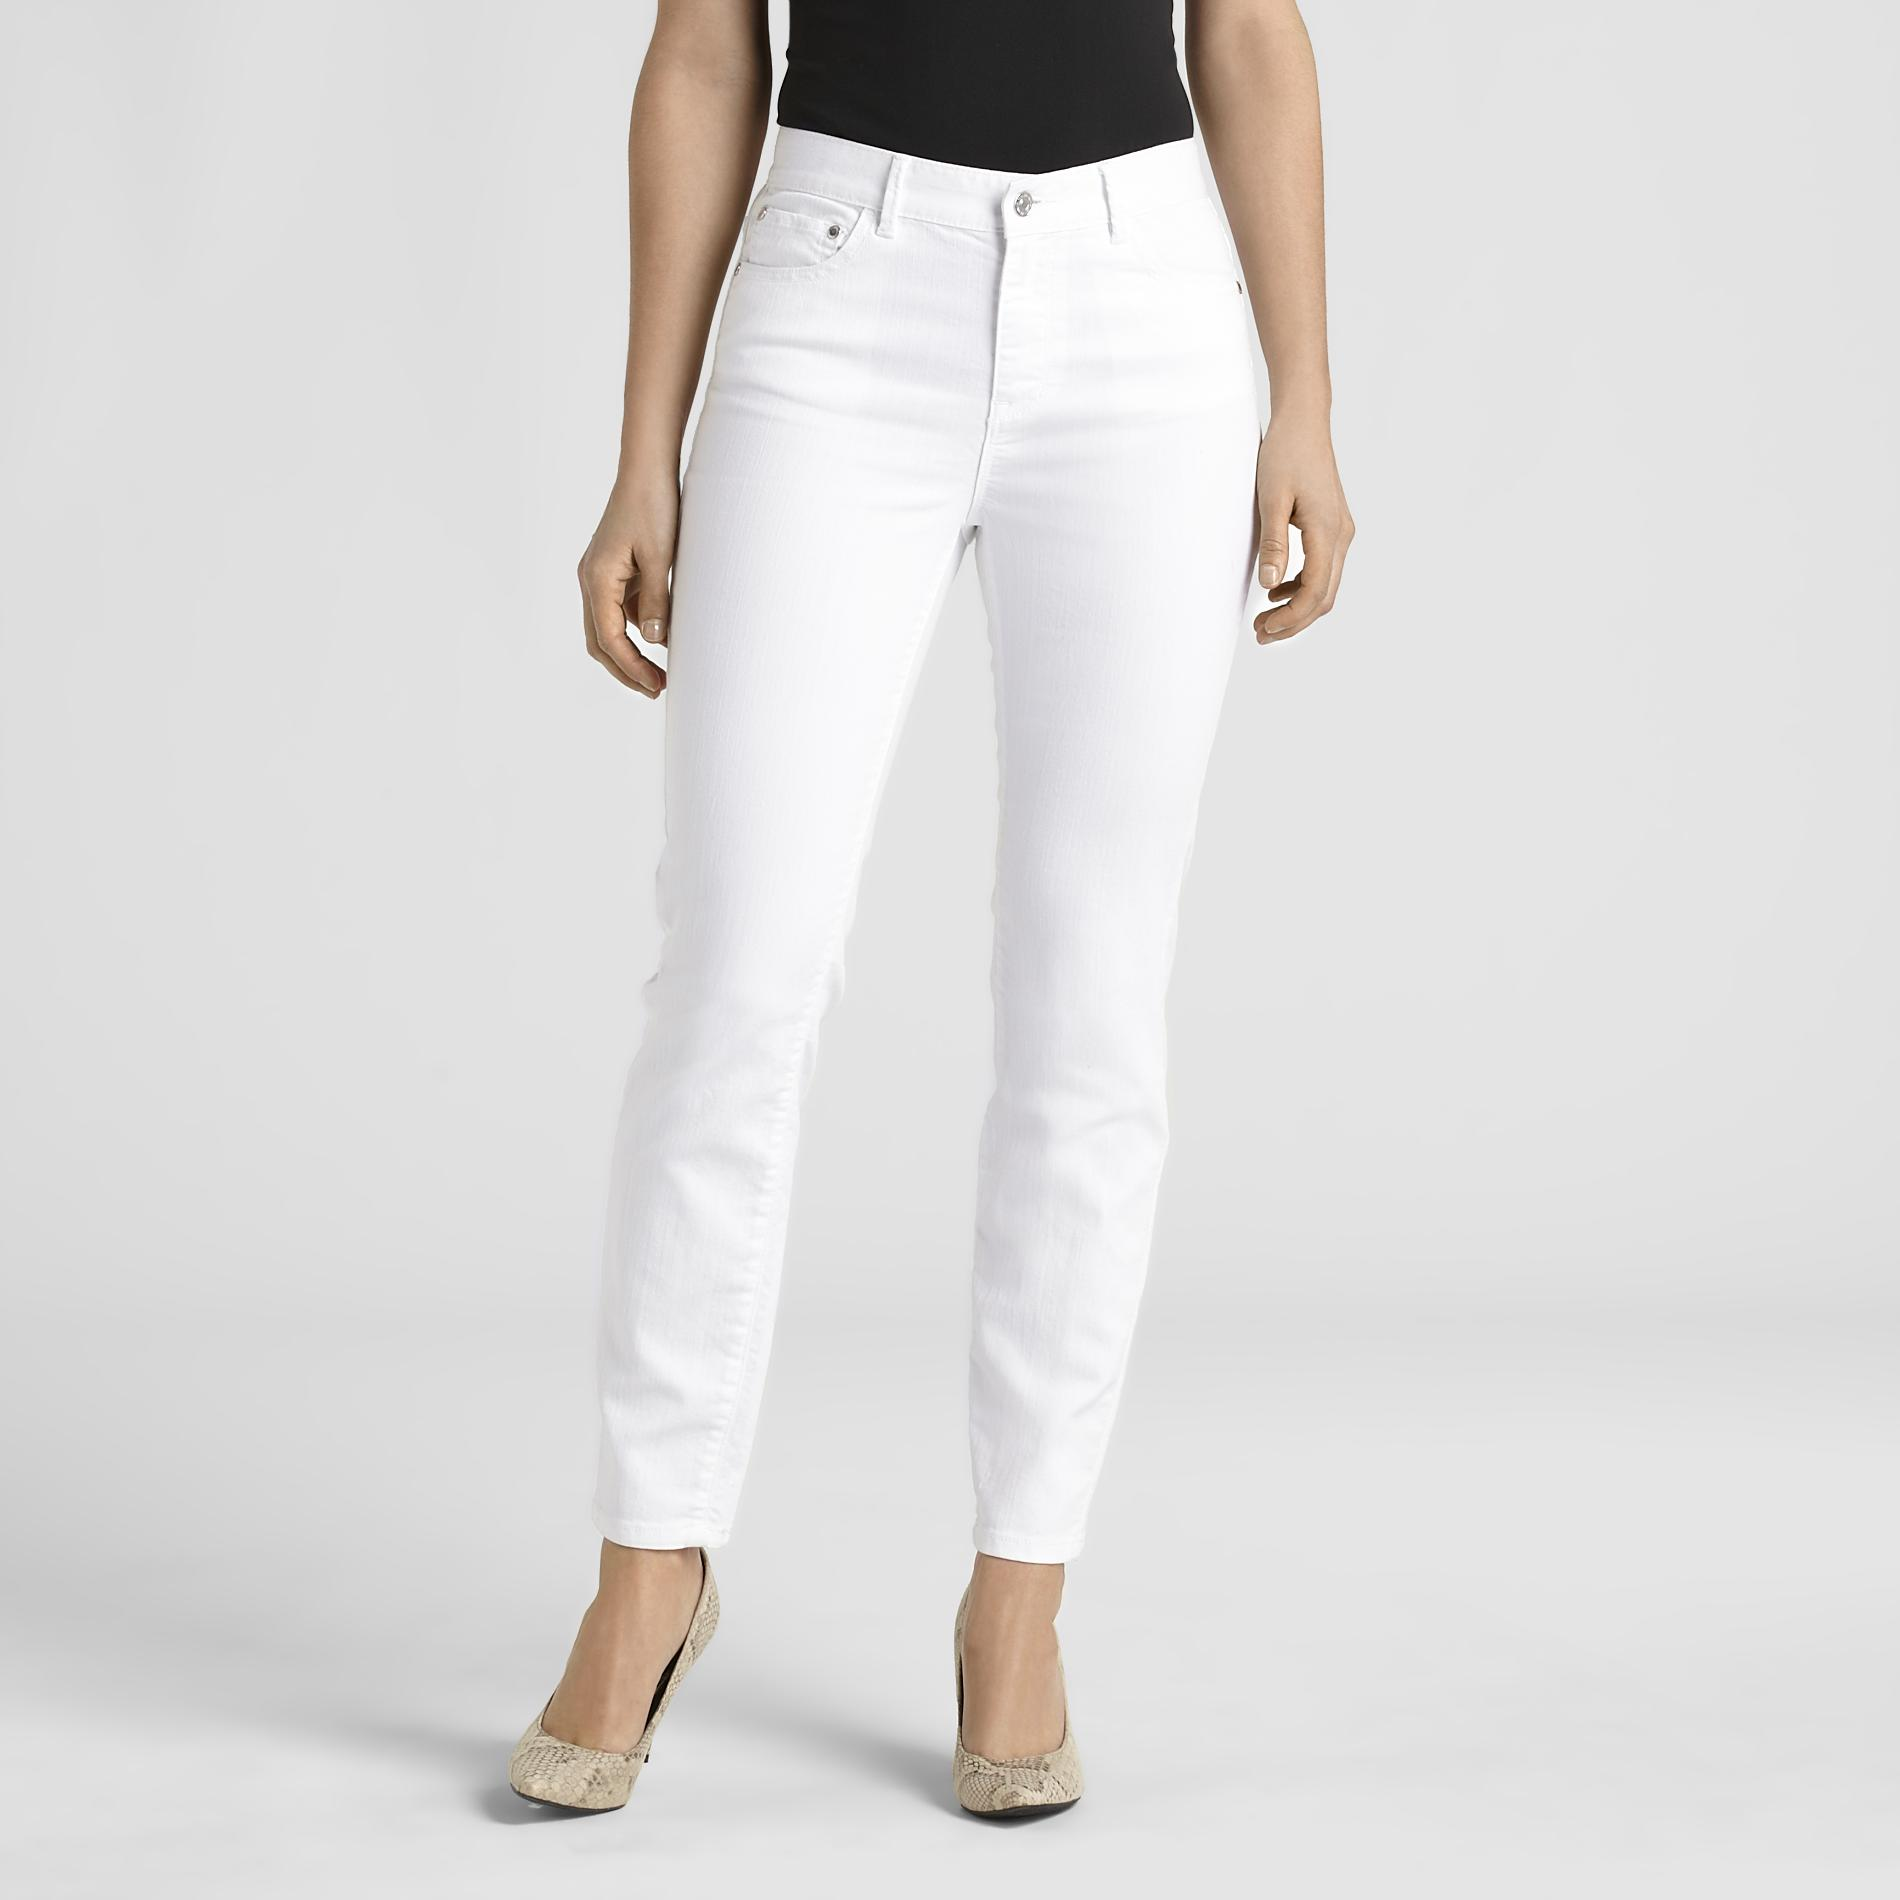 Jaclyn Smith Women's Slim-Stretch Jeans at Kmart.com